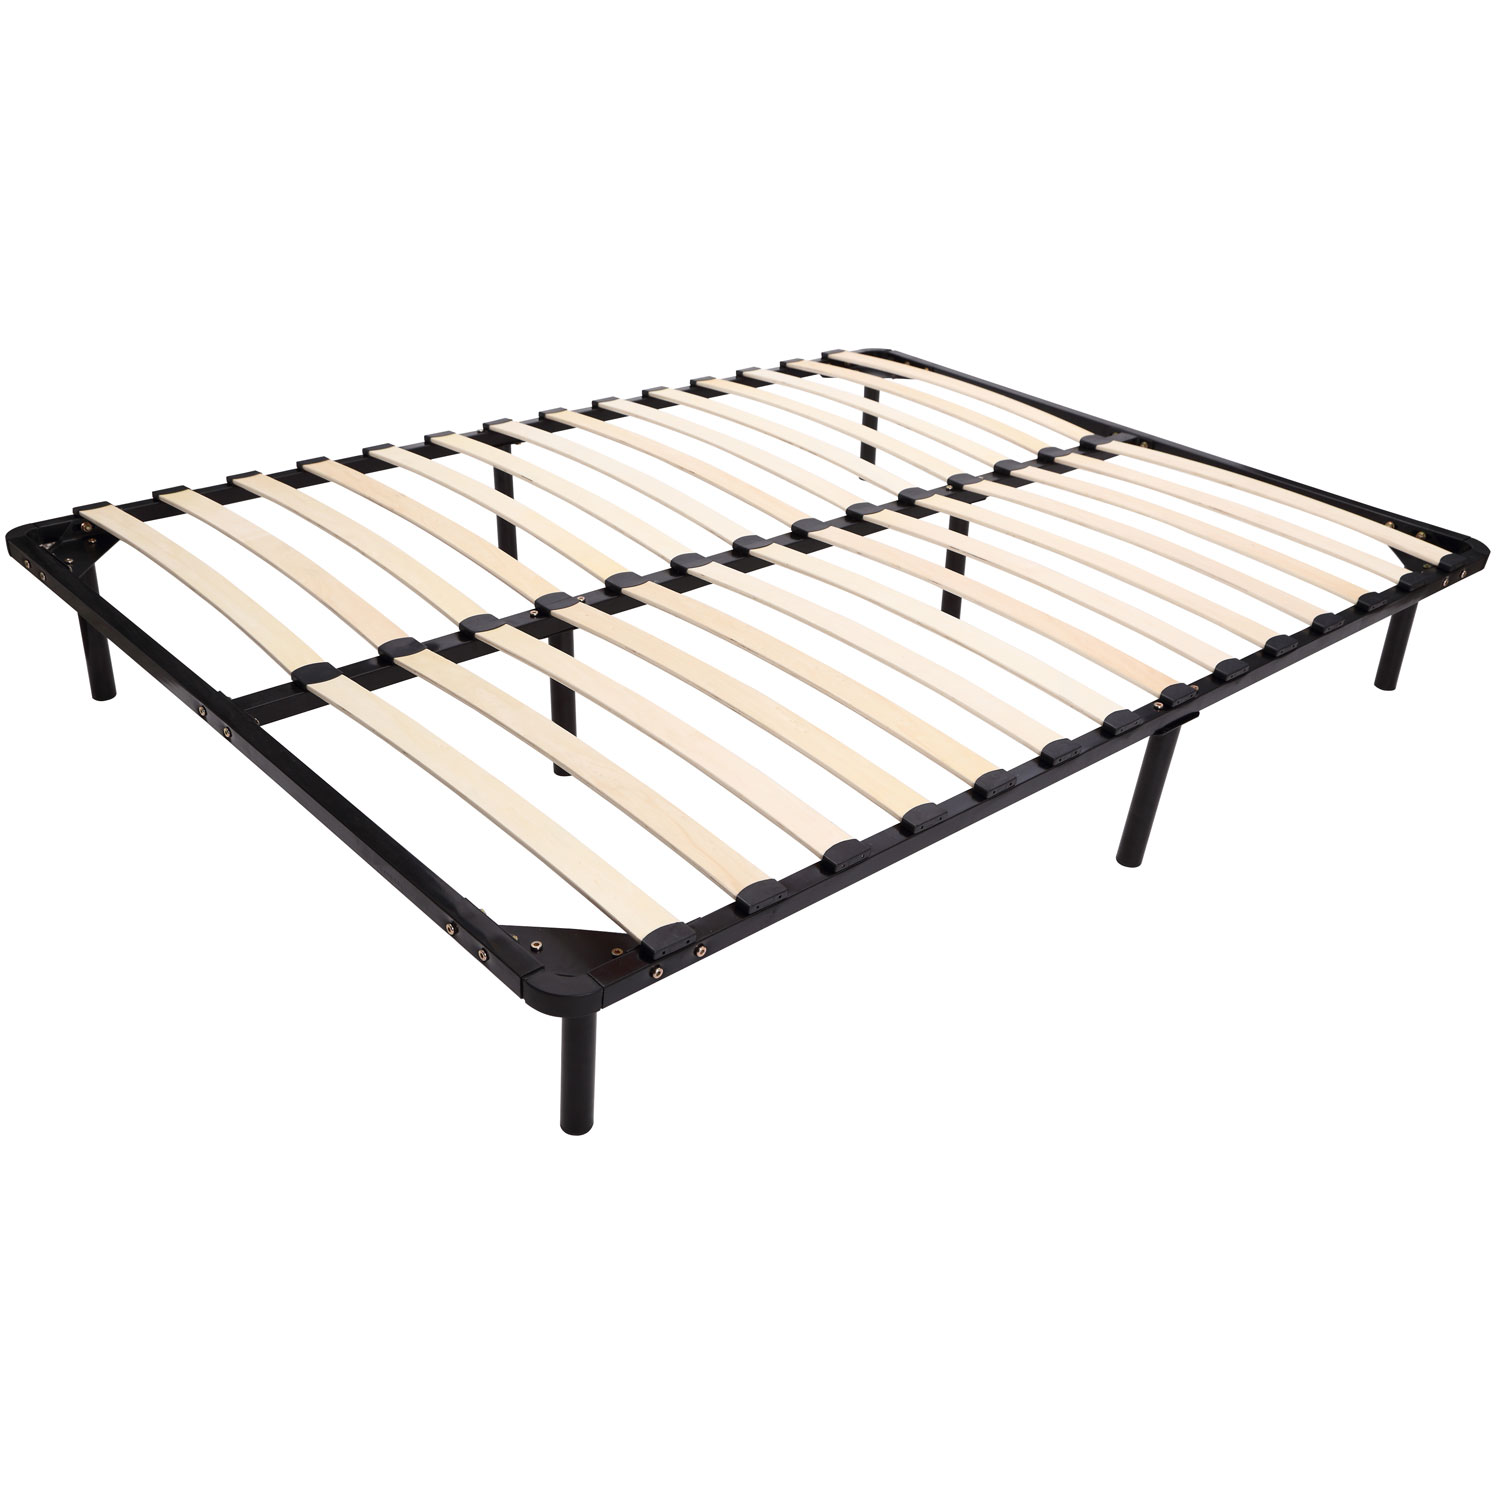 homcom queen size mattress wood slat platform bed frame - walmart